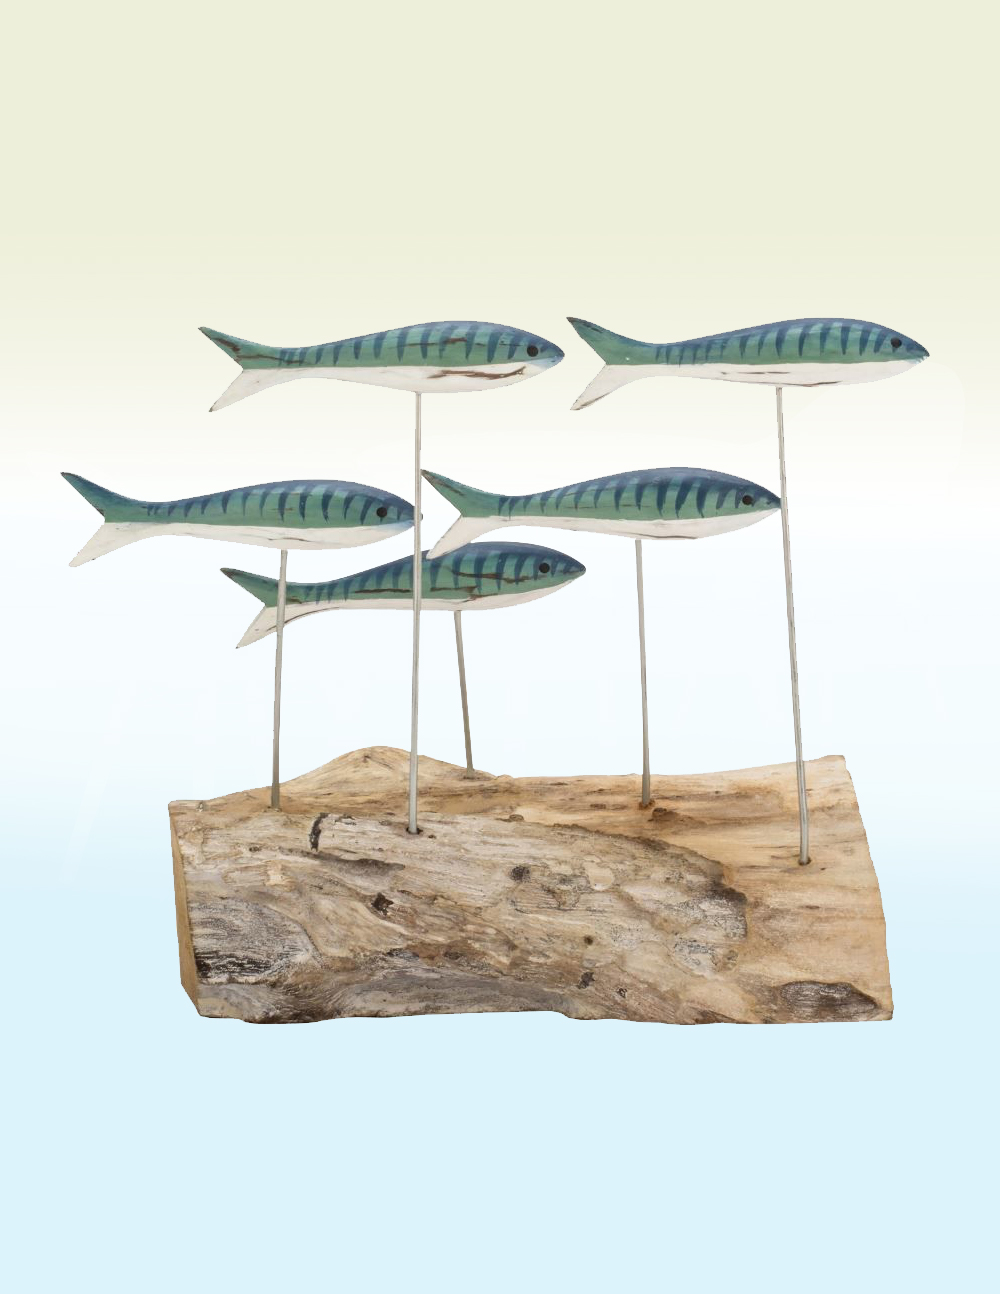 N323 Archipelago Mackerel Shoal Fish Wooden Sculpture 18cm Long | Avant Garden Guernsey